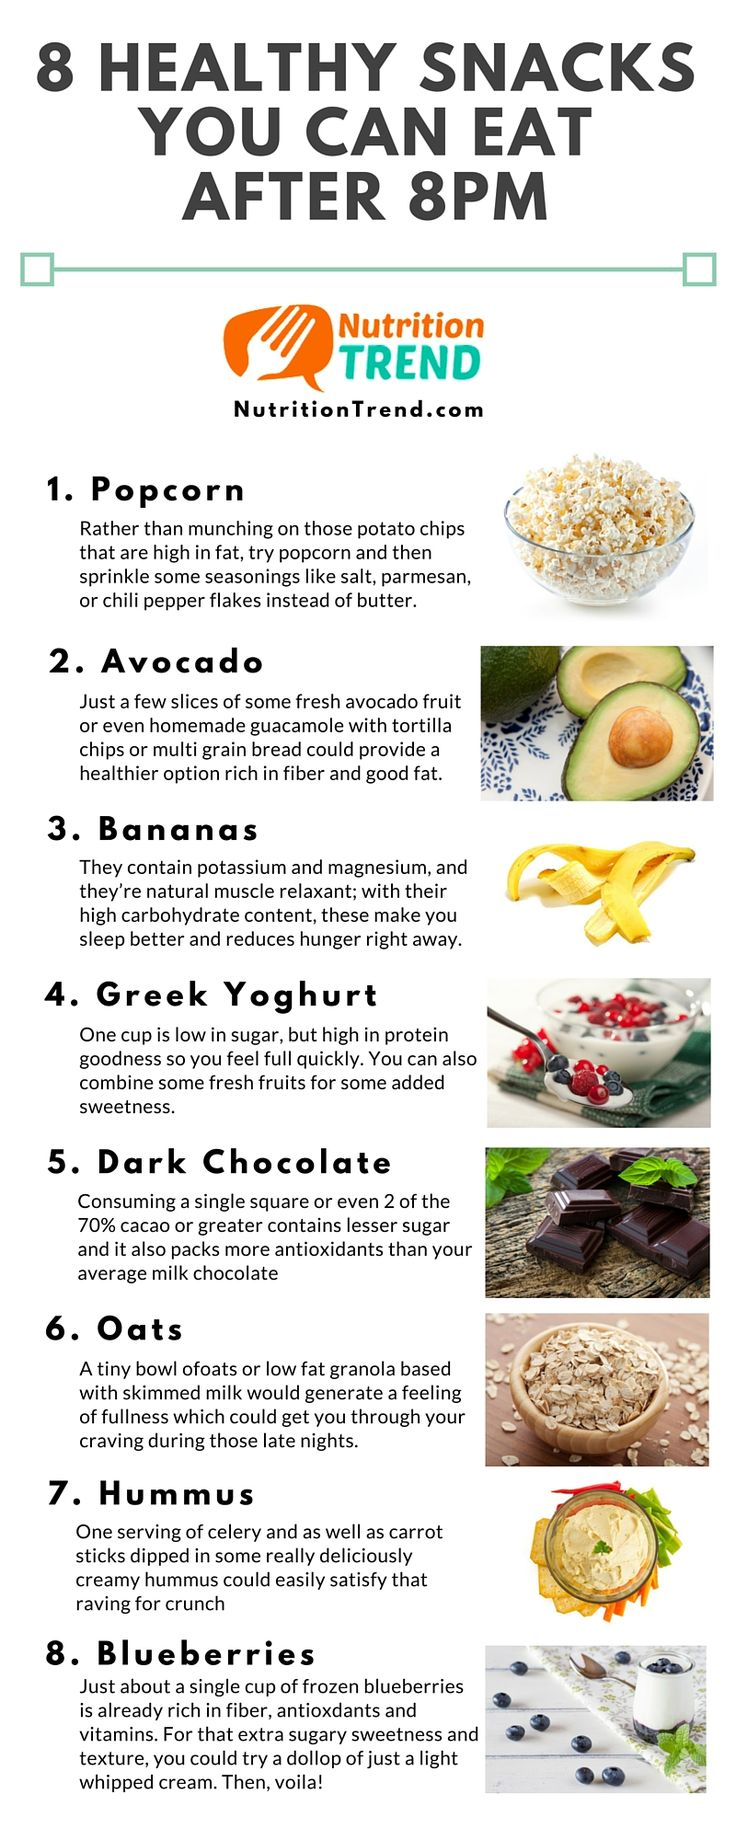 8 Quick, Healthy Late Night Snacks That Won't Go Straight to Your Hips!